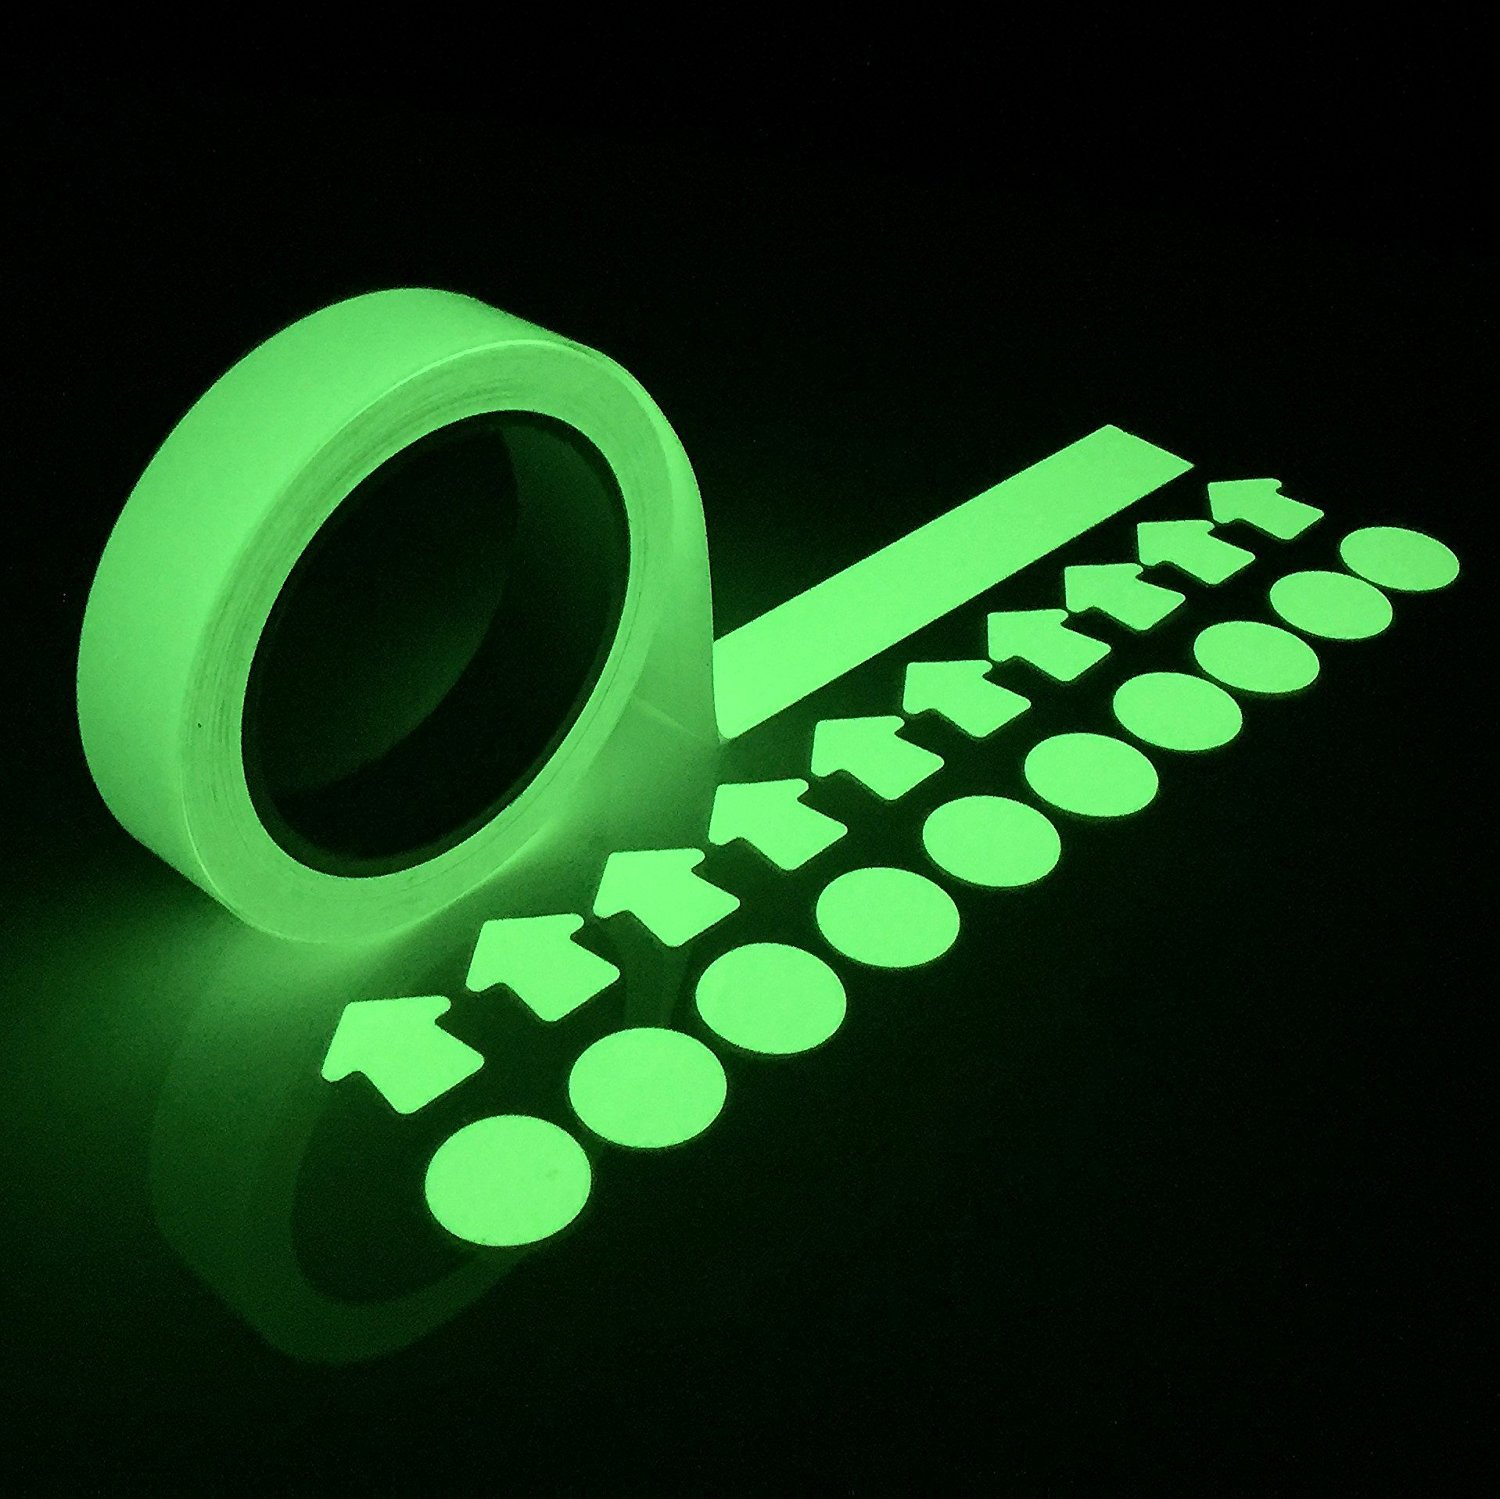 Glow in the Dark Tape - Luminous Stickers 30 Feet x 1 Inch Waterproof Masking, Gaffer and Emergency Use Tape | Glow-in-the-Dark Duck Tape has a Very Bright Photo-luminescent Glow